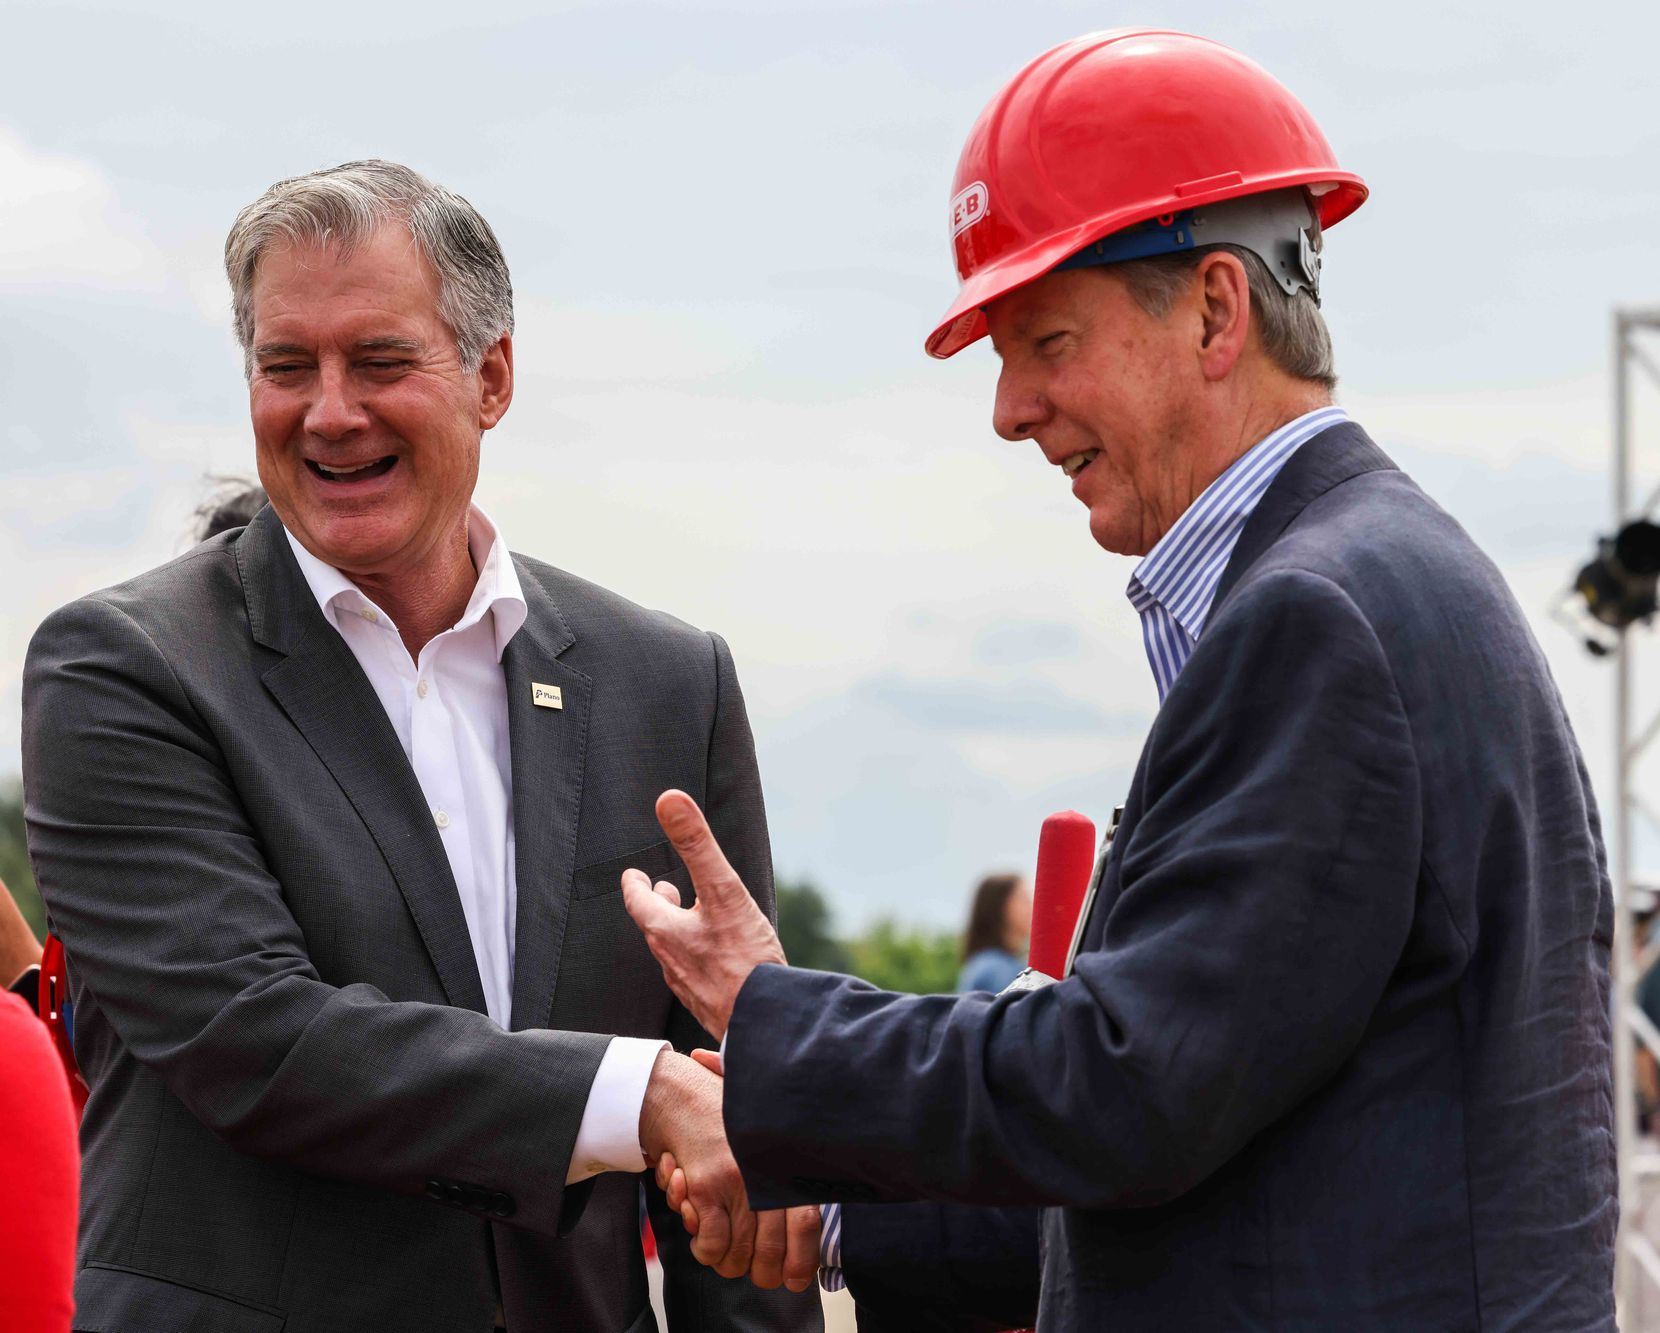 Plano Mayor John Muns and Central Market president Stephen Butt shake hands at the groundbreaking ceremony for the H-E-B store in Plano.